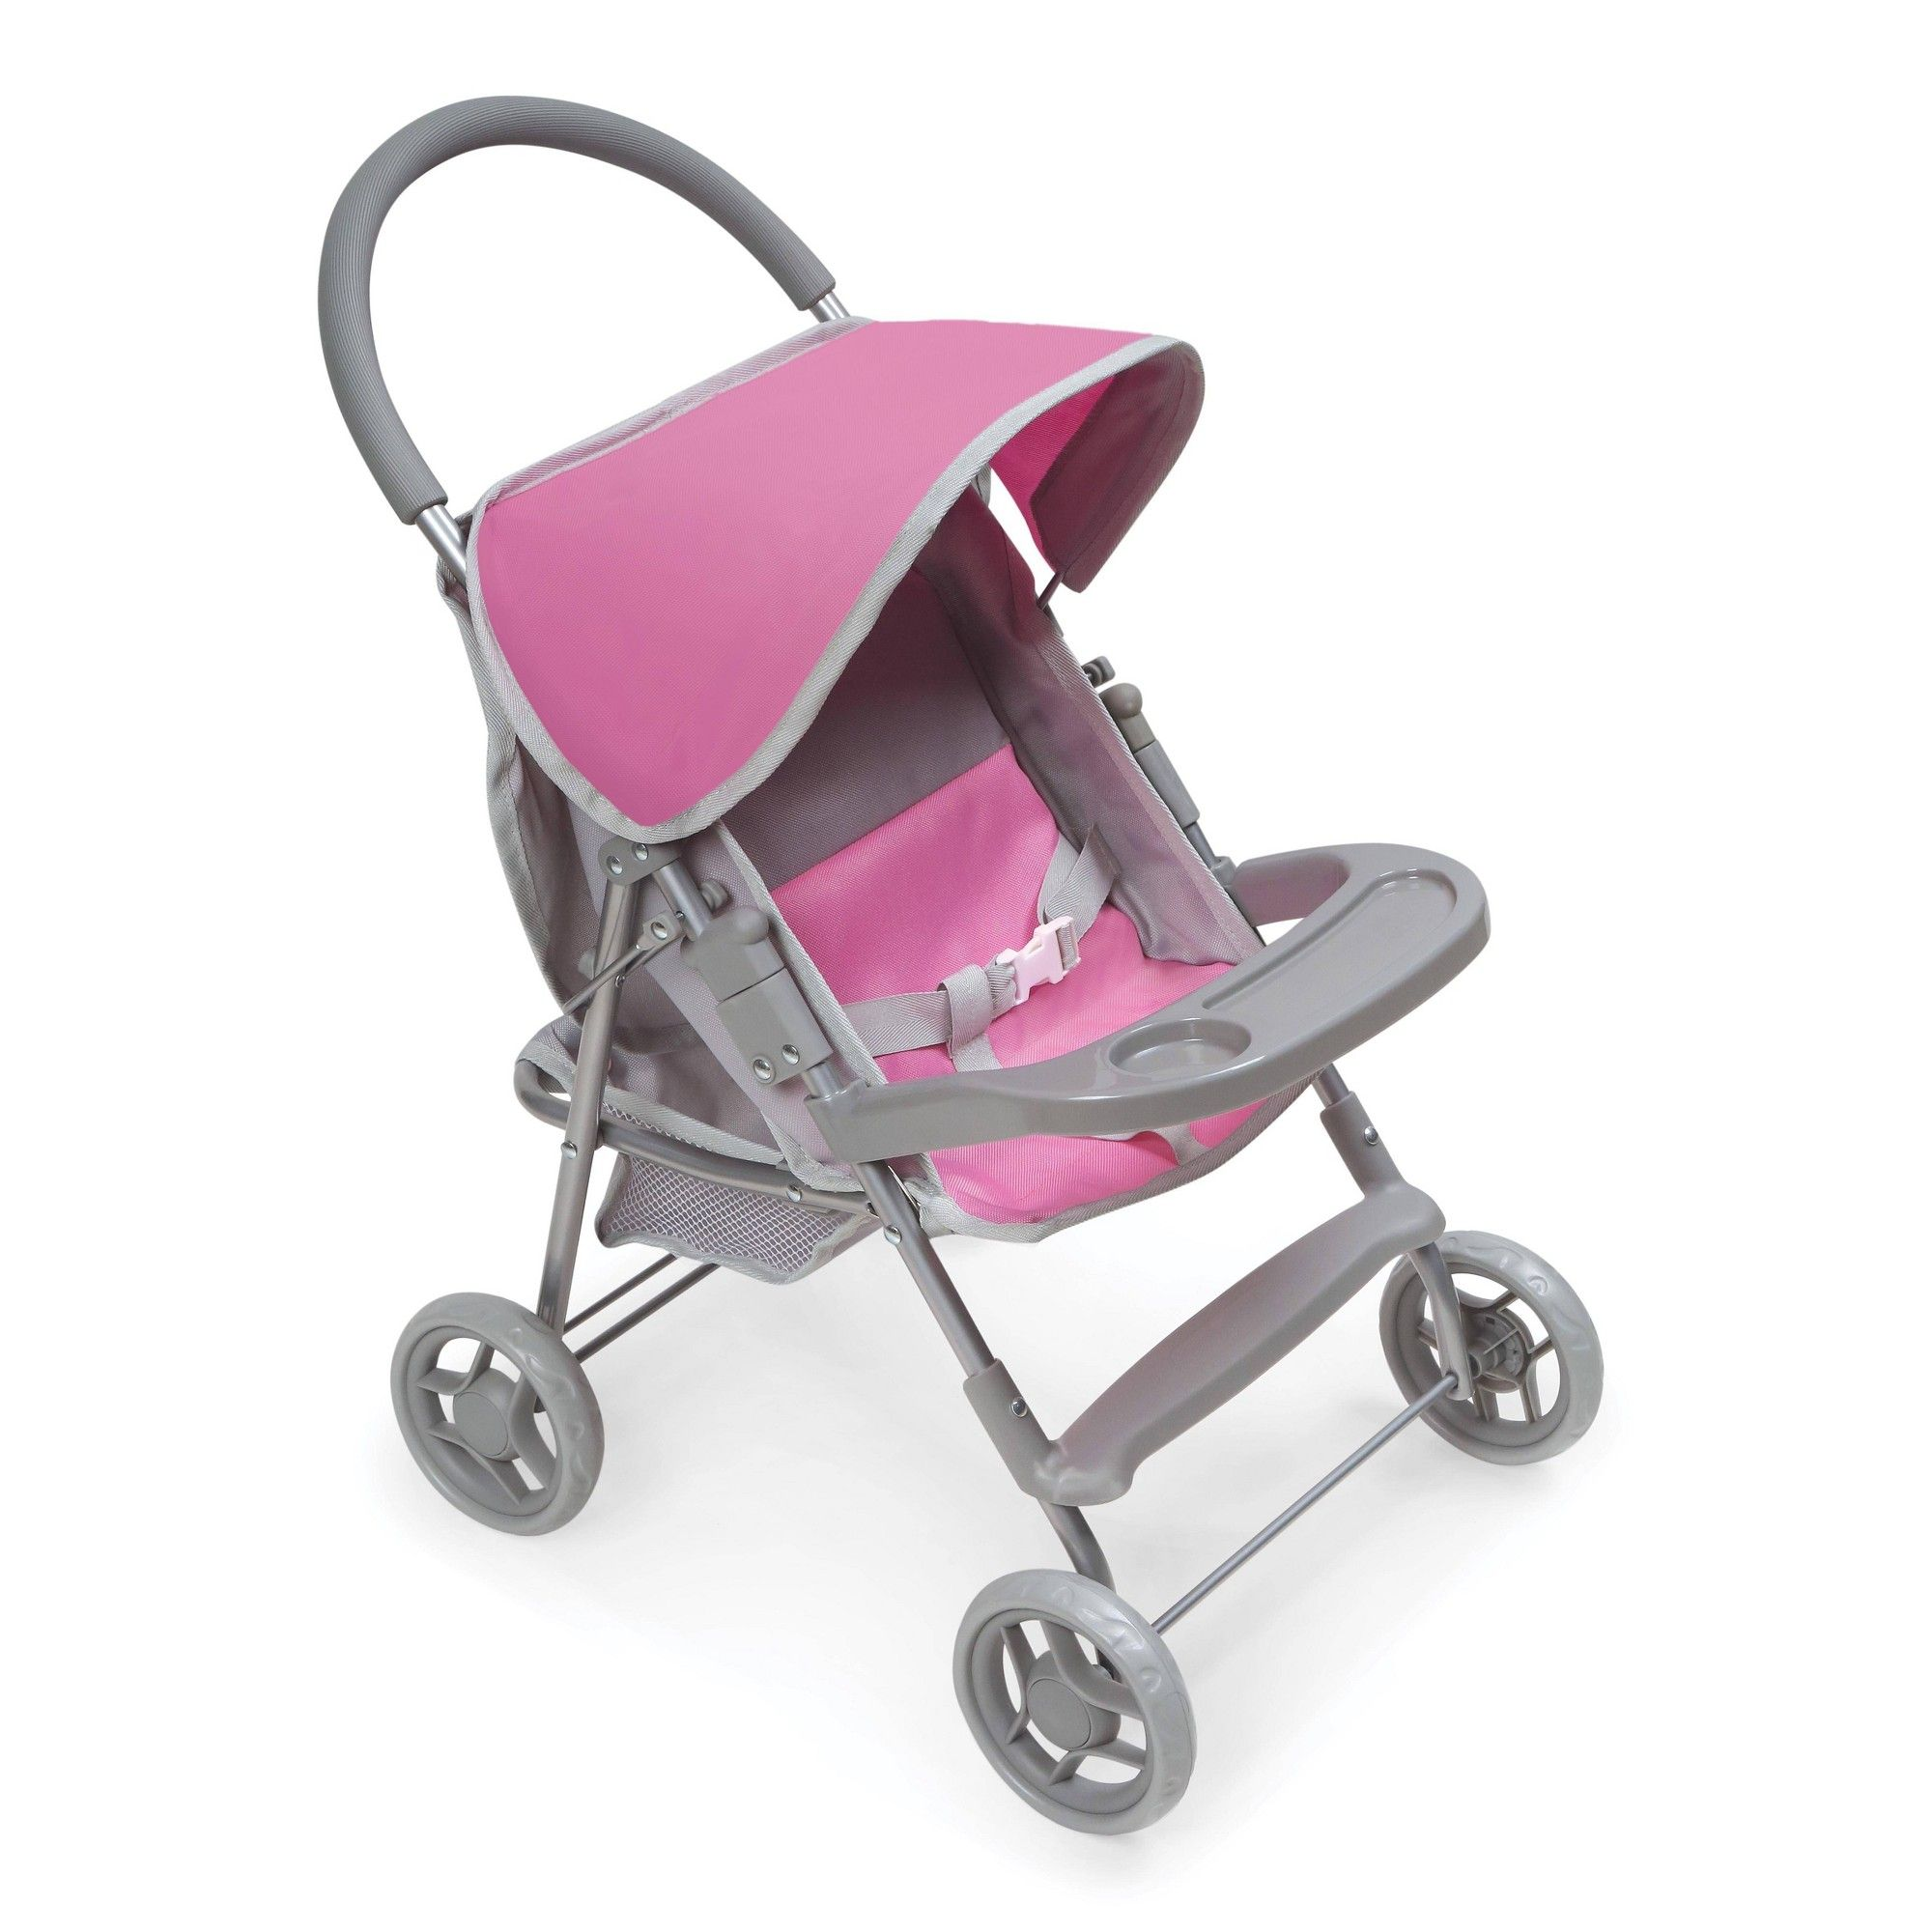 Glide Folding Single Doll Stroller Gray/Pink Stroller